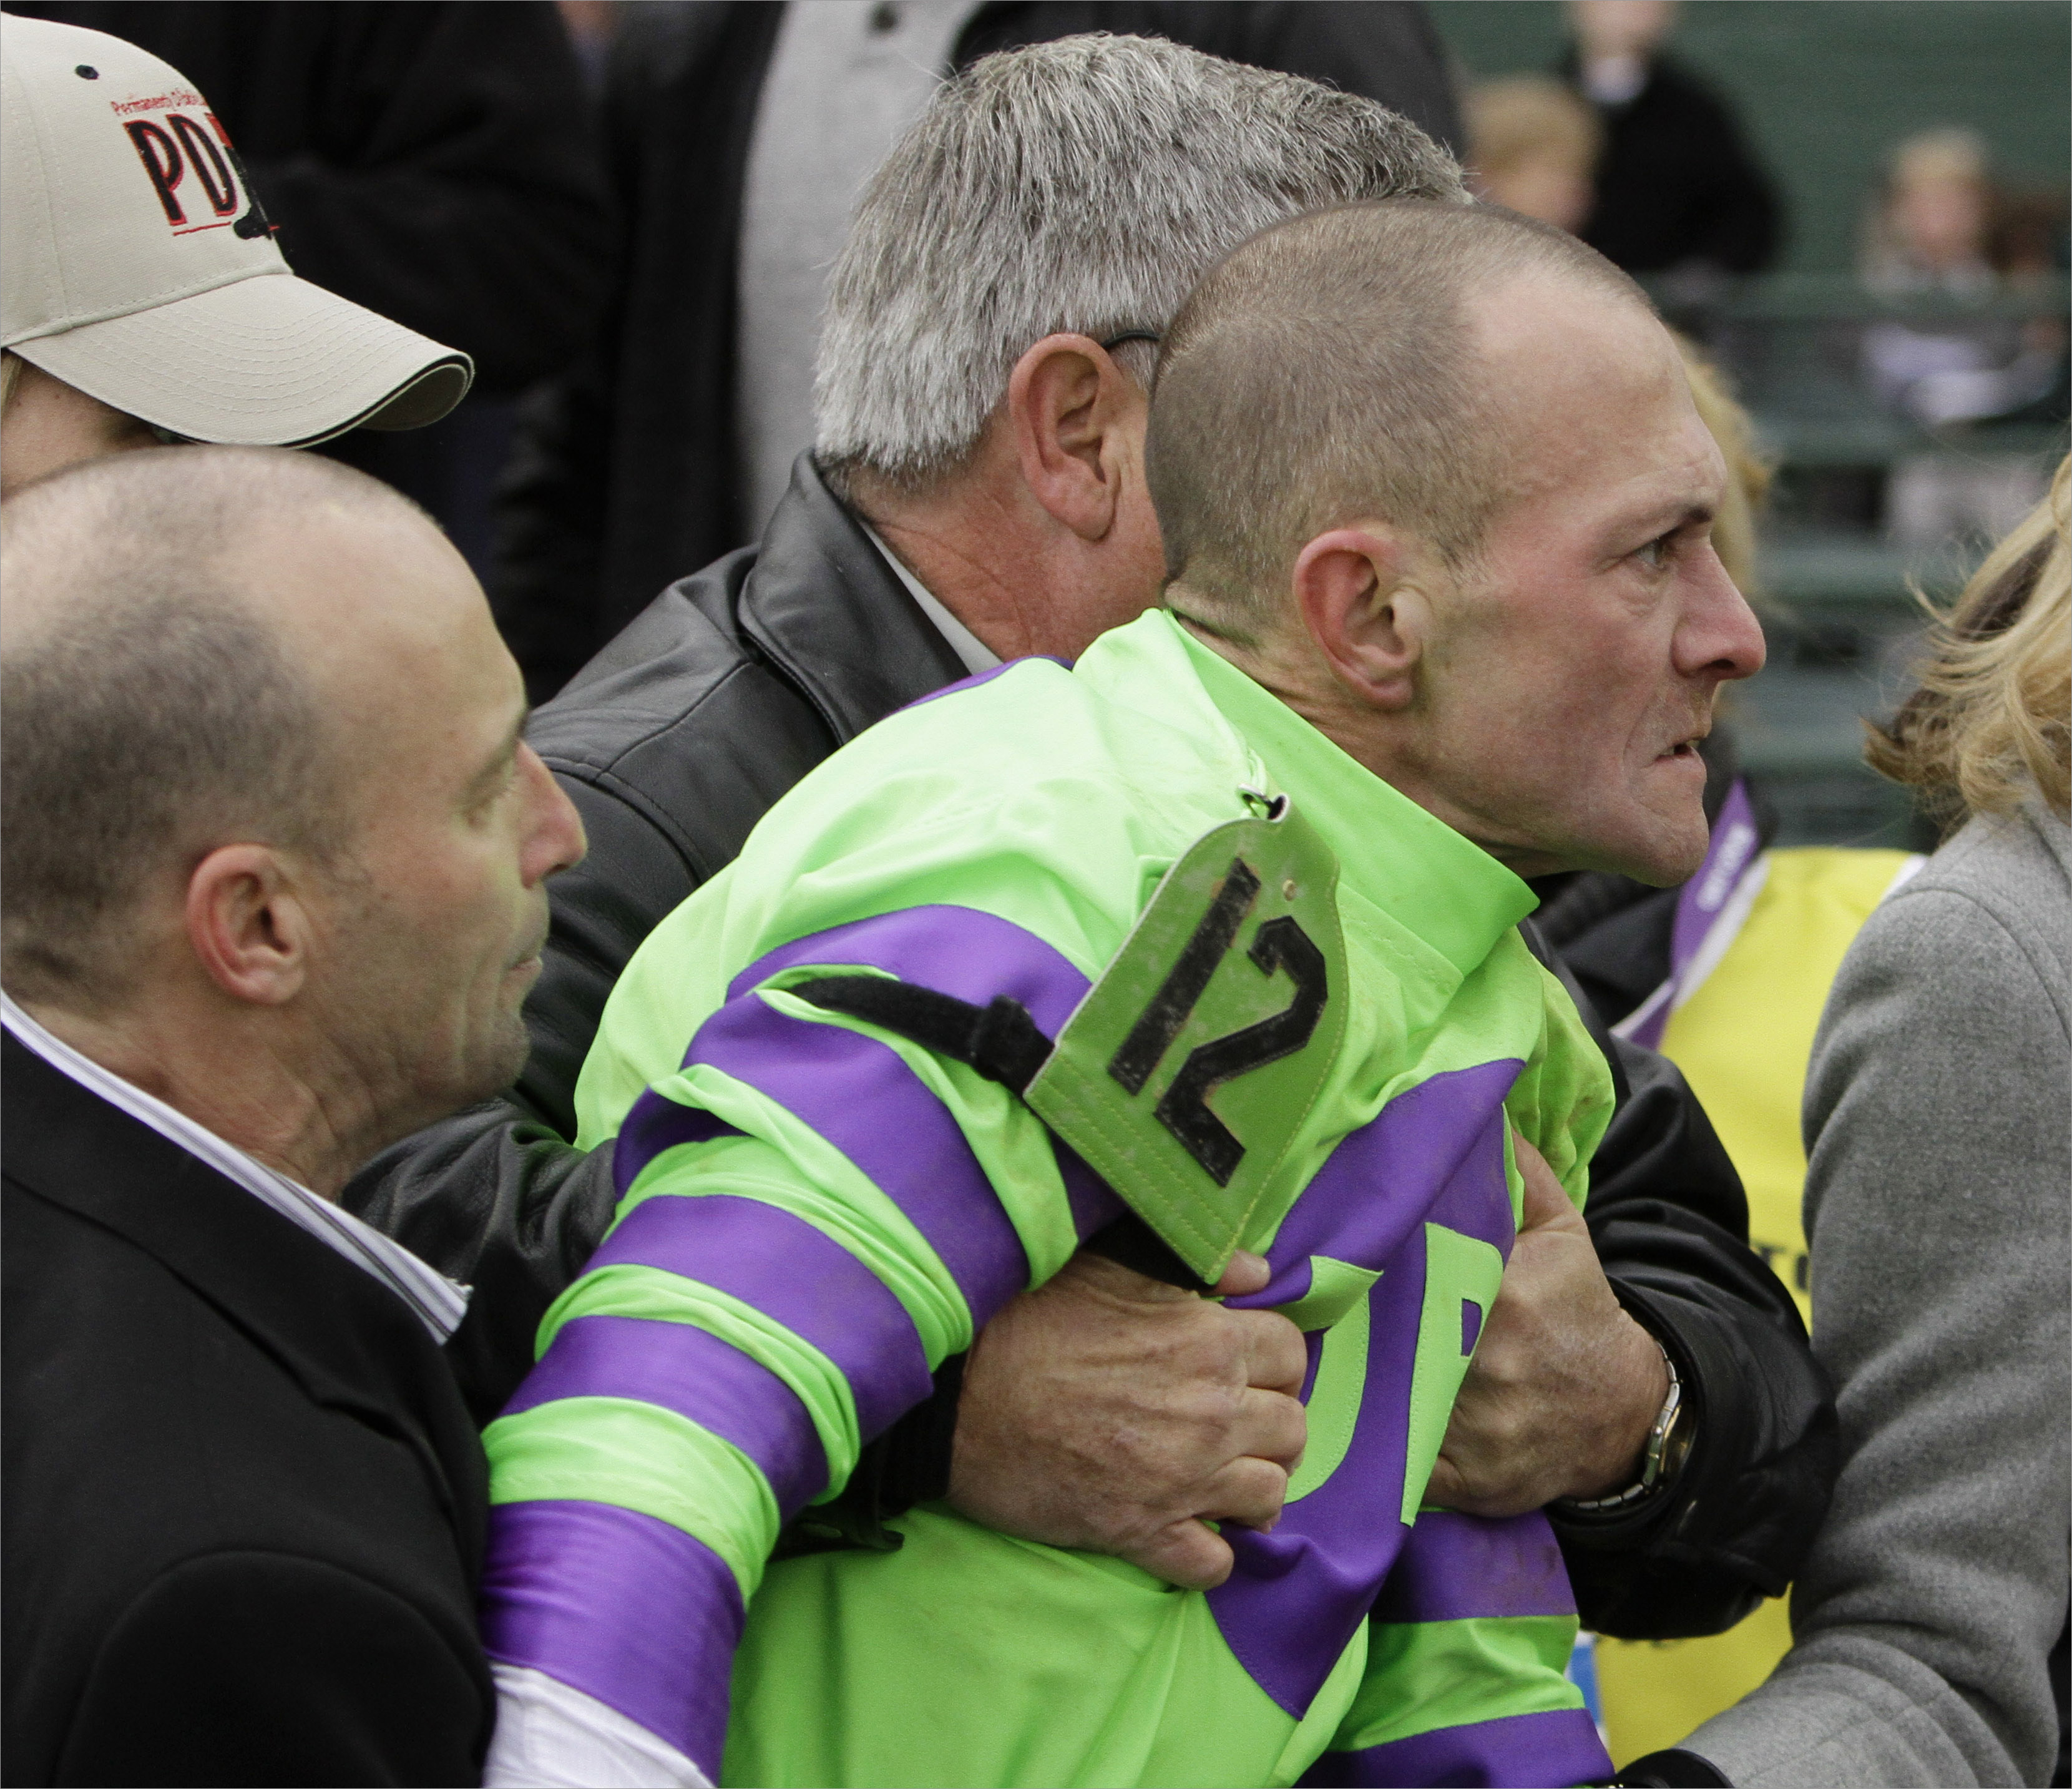 Jockeys Trade Punches At Breeders Cup The Buzz Boston